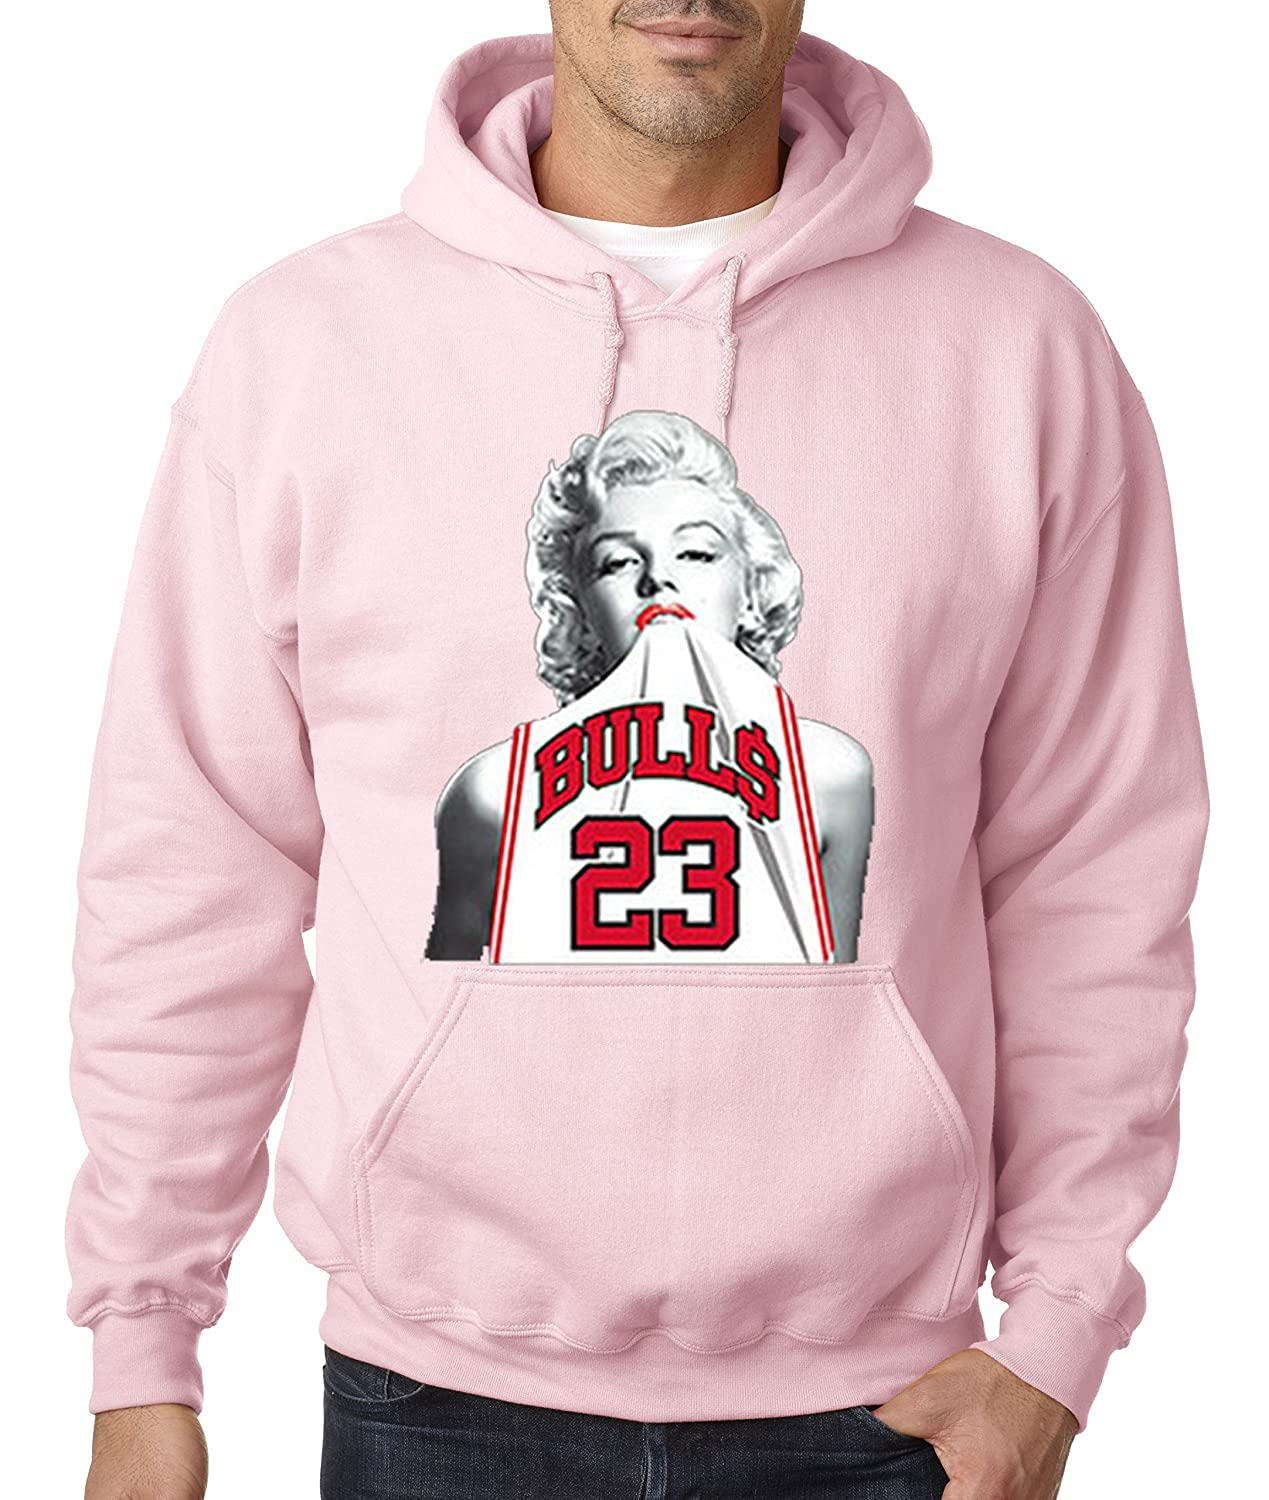 3bc2ef8312ad Amazon.com  New Way 193 - Hoodie Marilyn Monroe Bulls 23 Jordan Jersey  Unisex Pullover Sweatshirt  Clothing